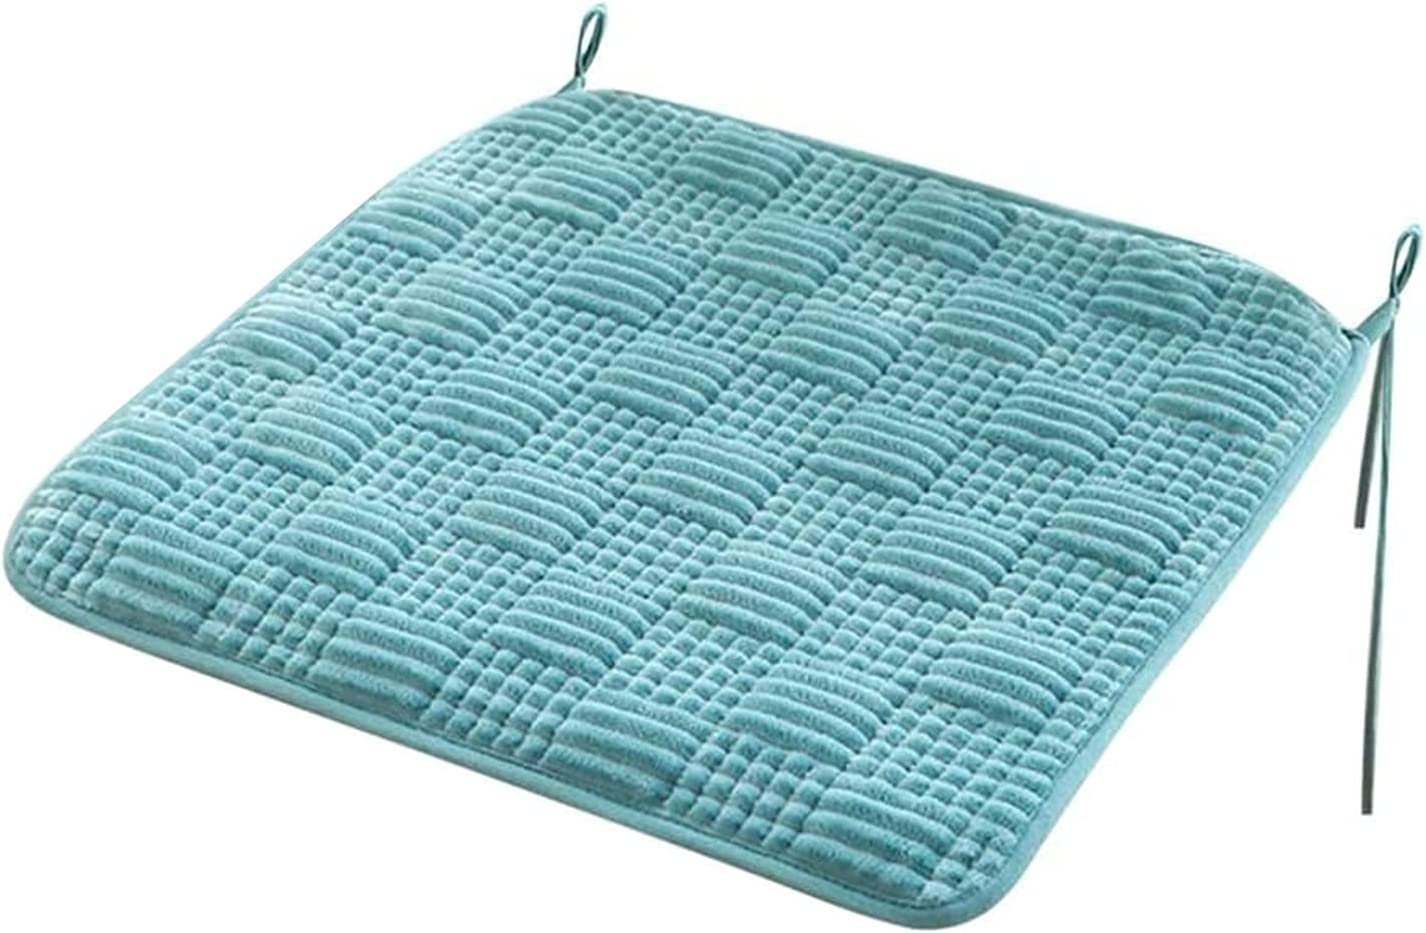 Dealing full price reduction TYHZ Don't miss the campaign Chair Cushion Dining C Superior Seat Pad